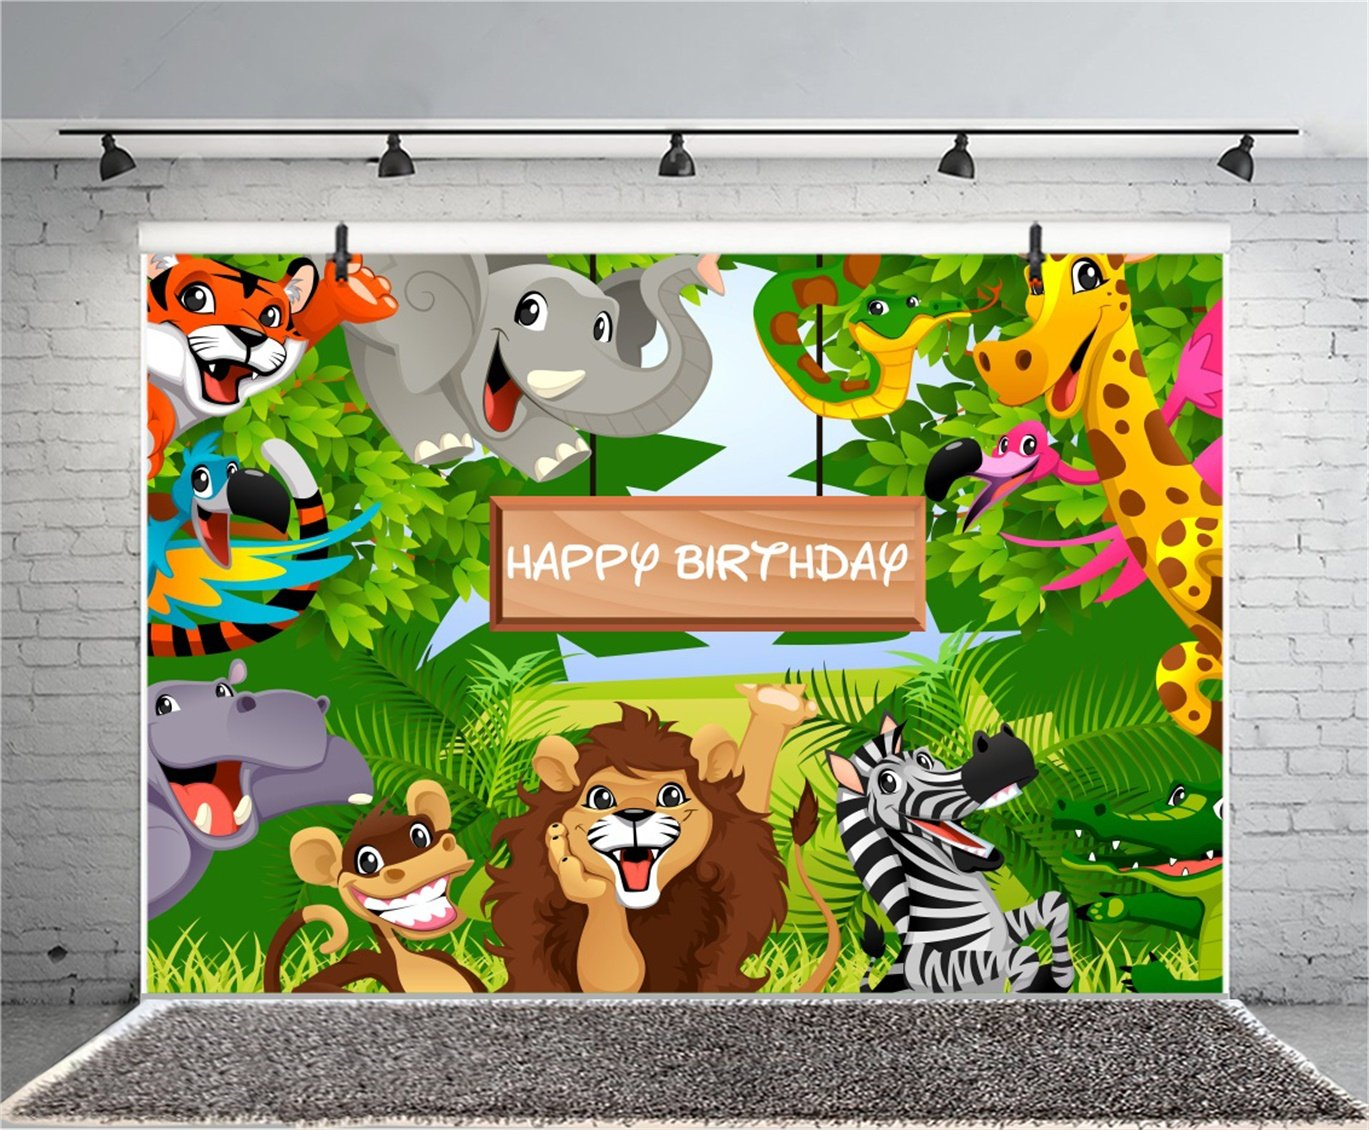 COMOPHOTO Jungle Safari Birthday Backdrop White Wood Crown Animals Birthday Banner 7x5ft Cake Table Decoration Photography Background for Photo Booth Newborn Kids Photo Studio Props